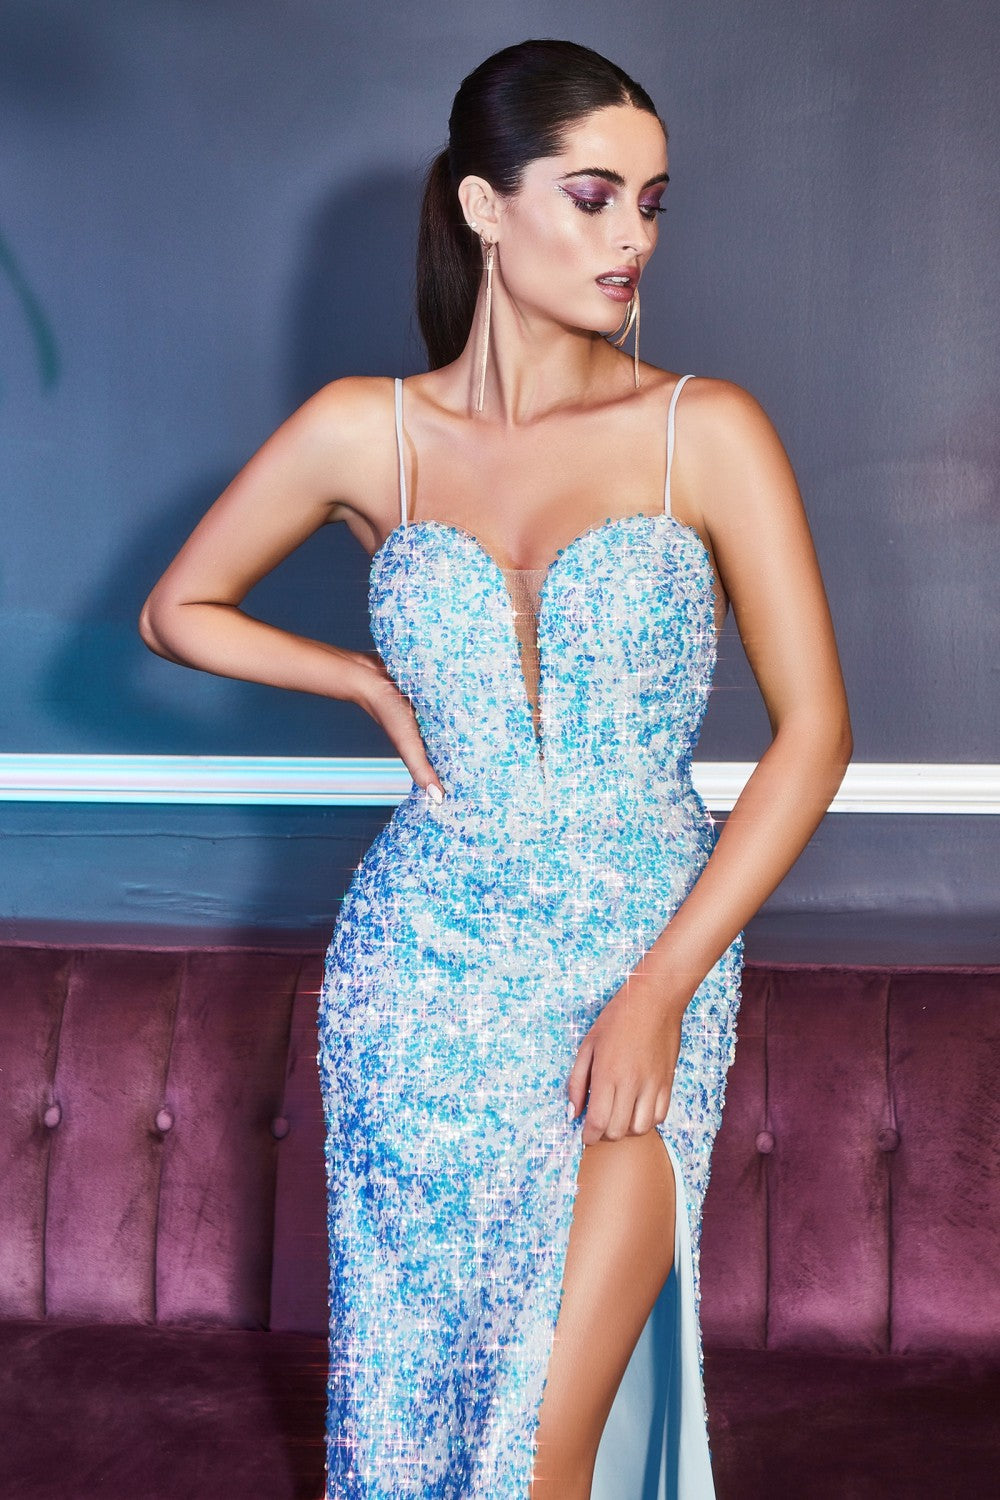 CD CD176 - Iridescent Sequin Fit & Flare Prom Gown with V-Neck Spaghetti Straps & Leg Slit